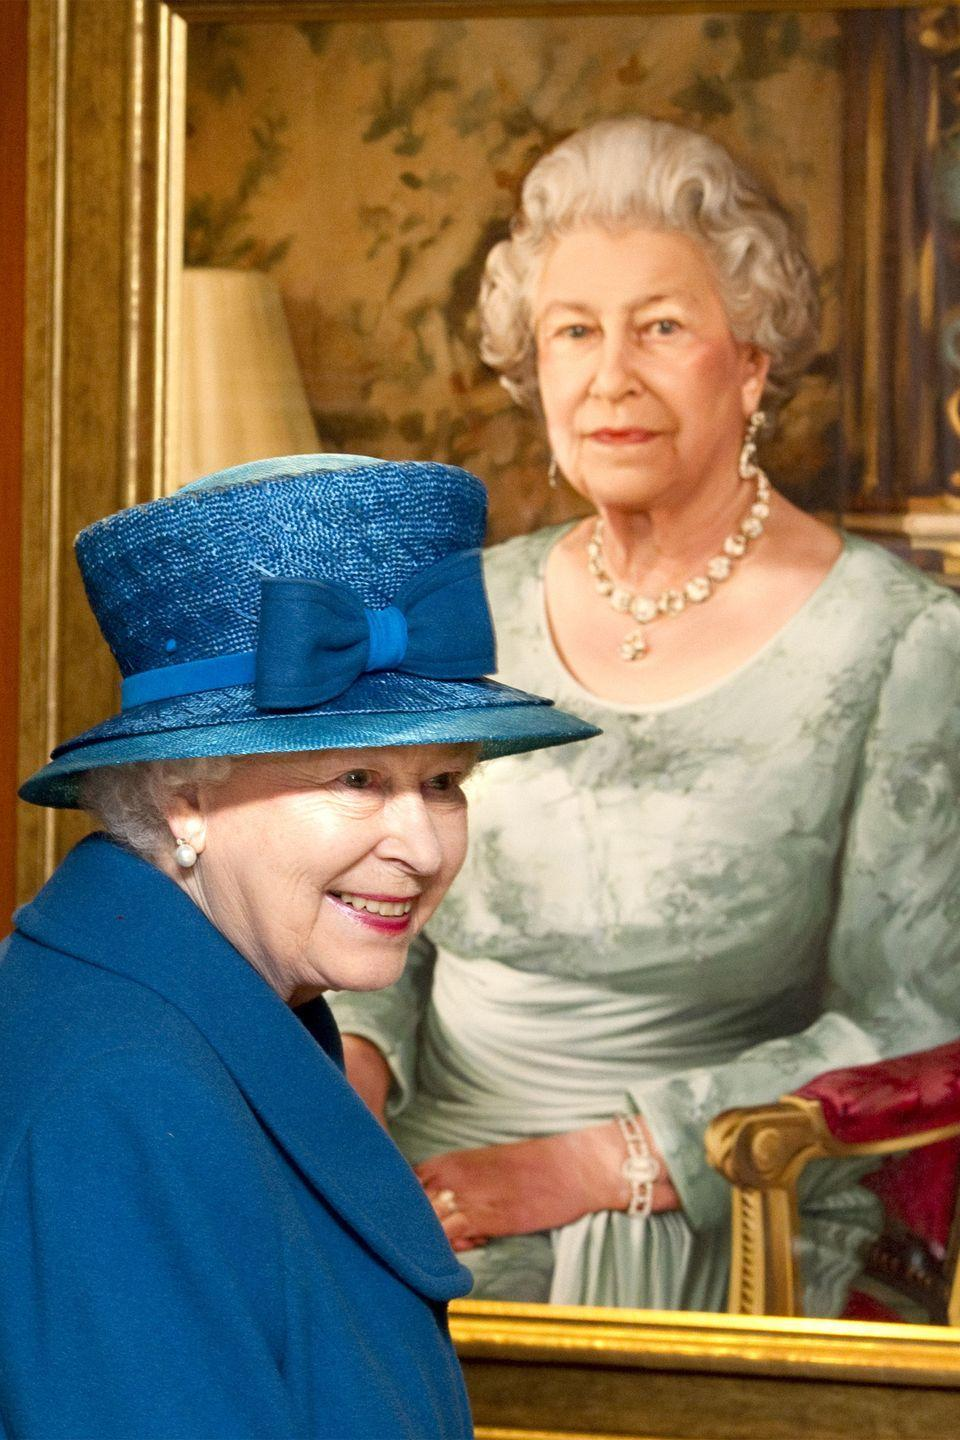 <p>QEII wore a blue jacket, matching hat, and pearl earrings as she looked at a commissioned portrait of herself in The Queen's Room at the Southampton docks.</p>